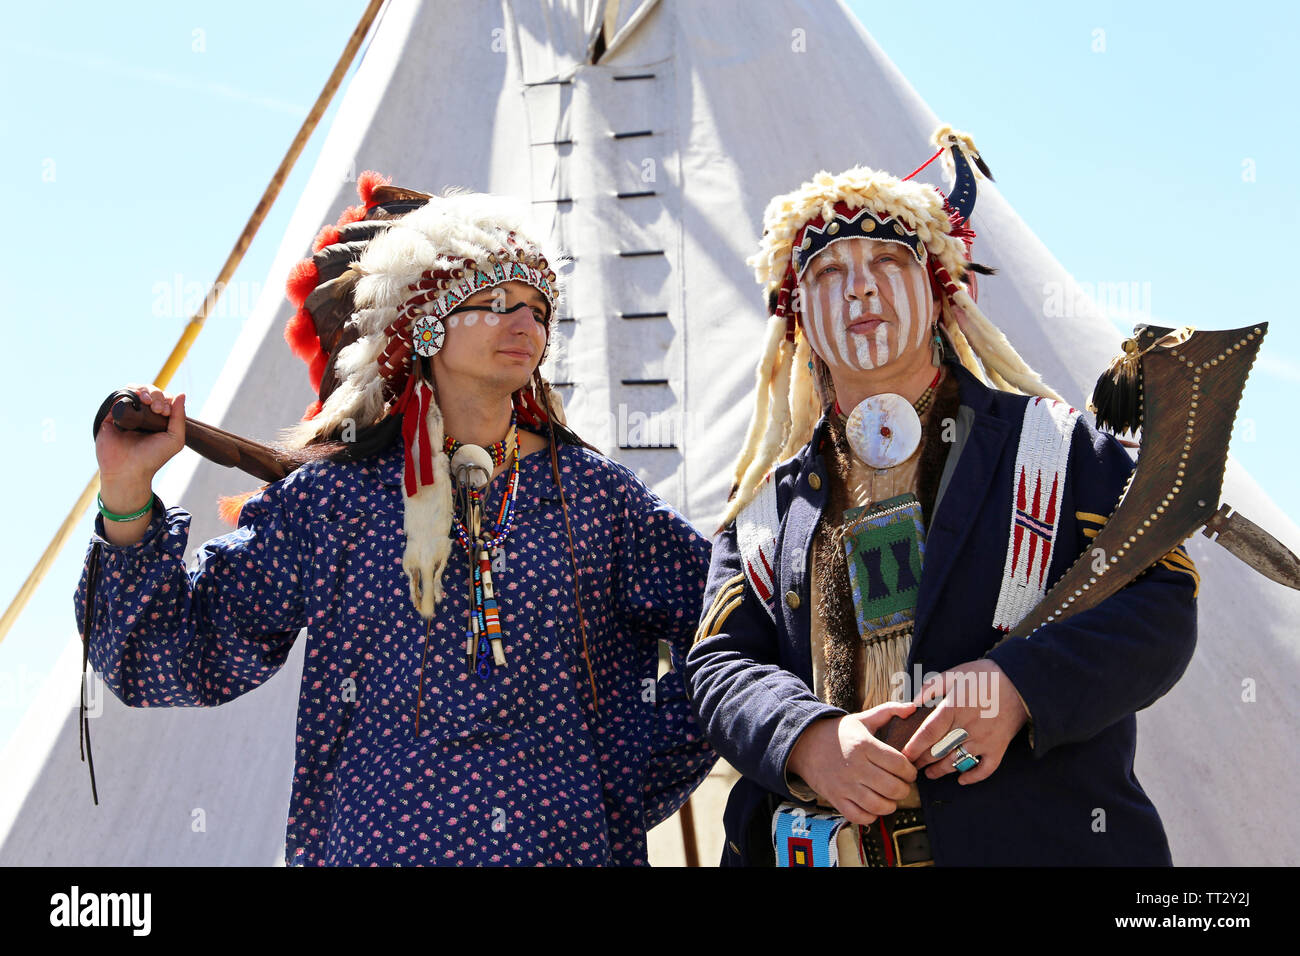 North American Indians stand with weapon near a wigwam against the blue sky. Reconstruction of native american life on Moscow historical festival - Stock Image